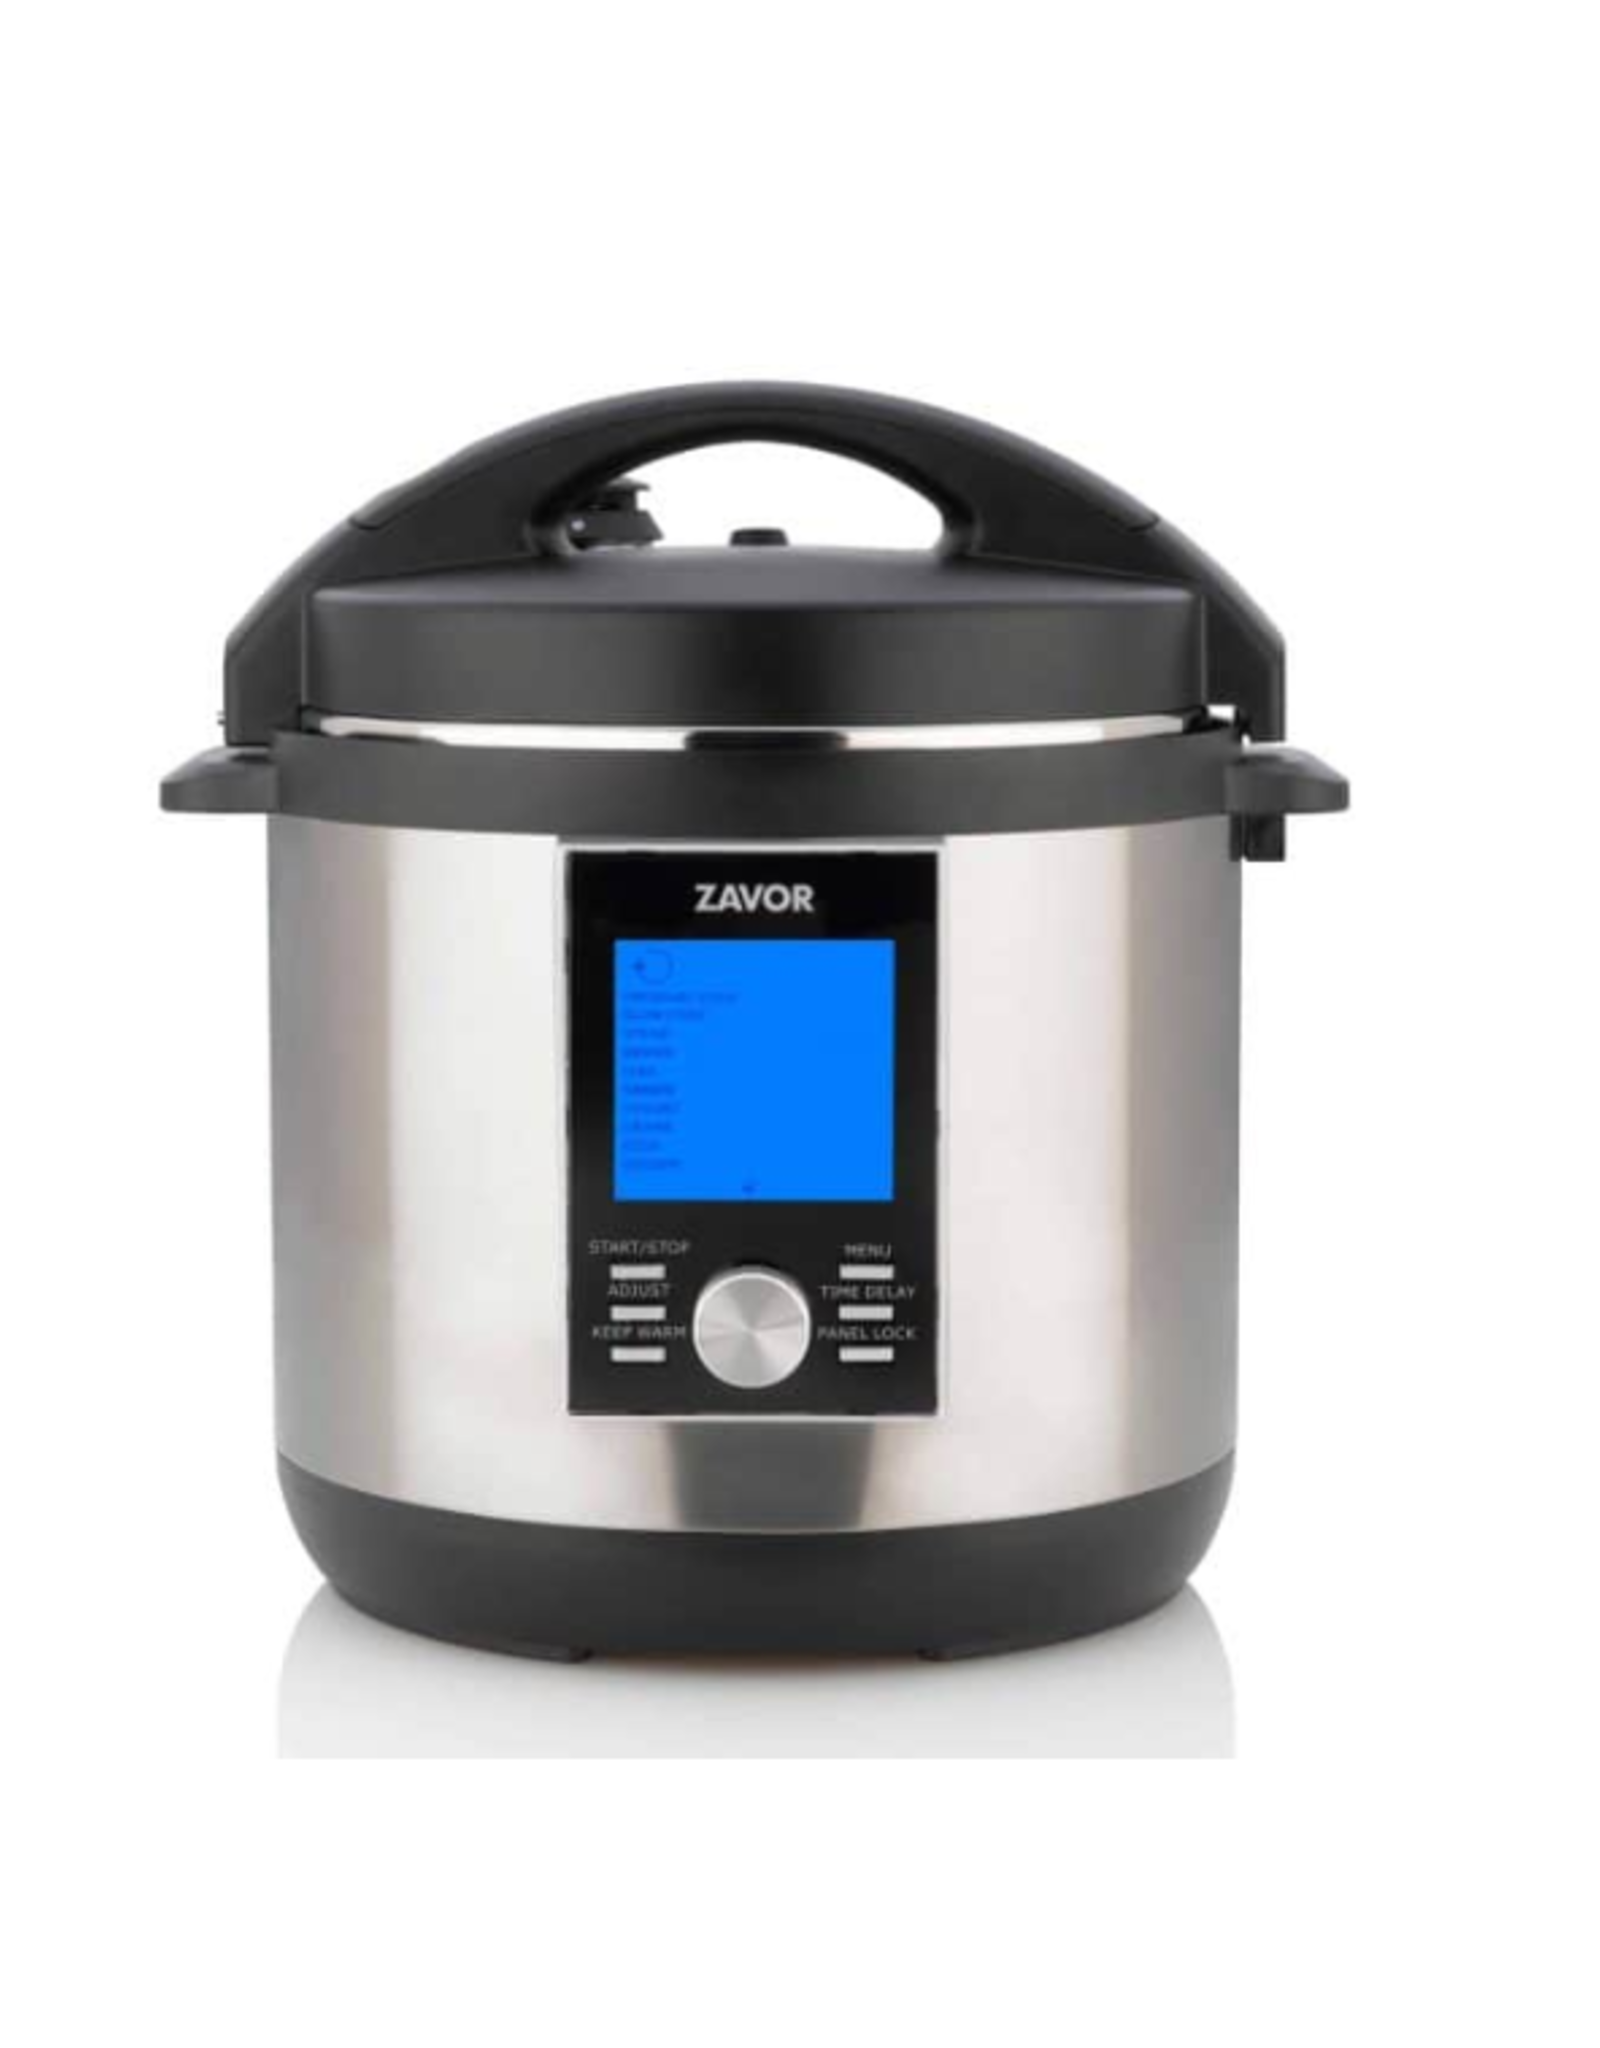 Zavor LUX LCD 6qt. Electric Multi-Cooker